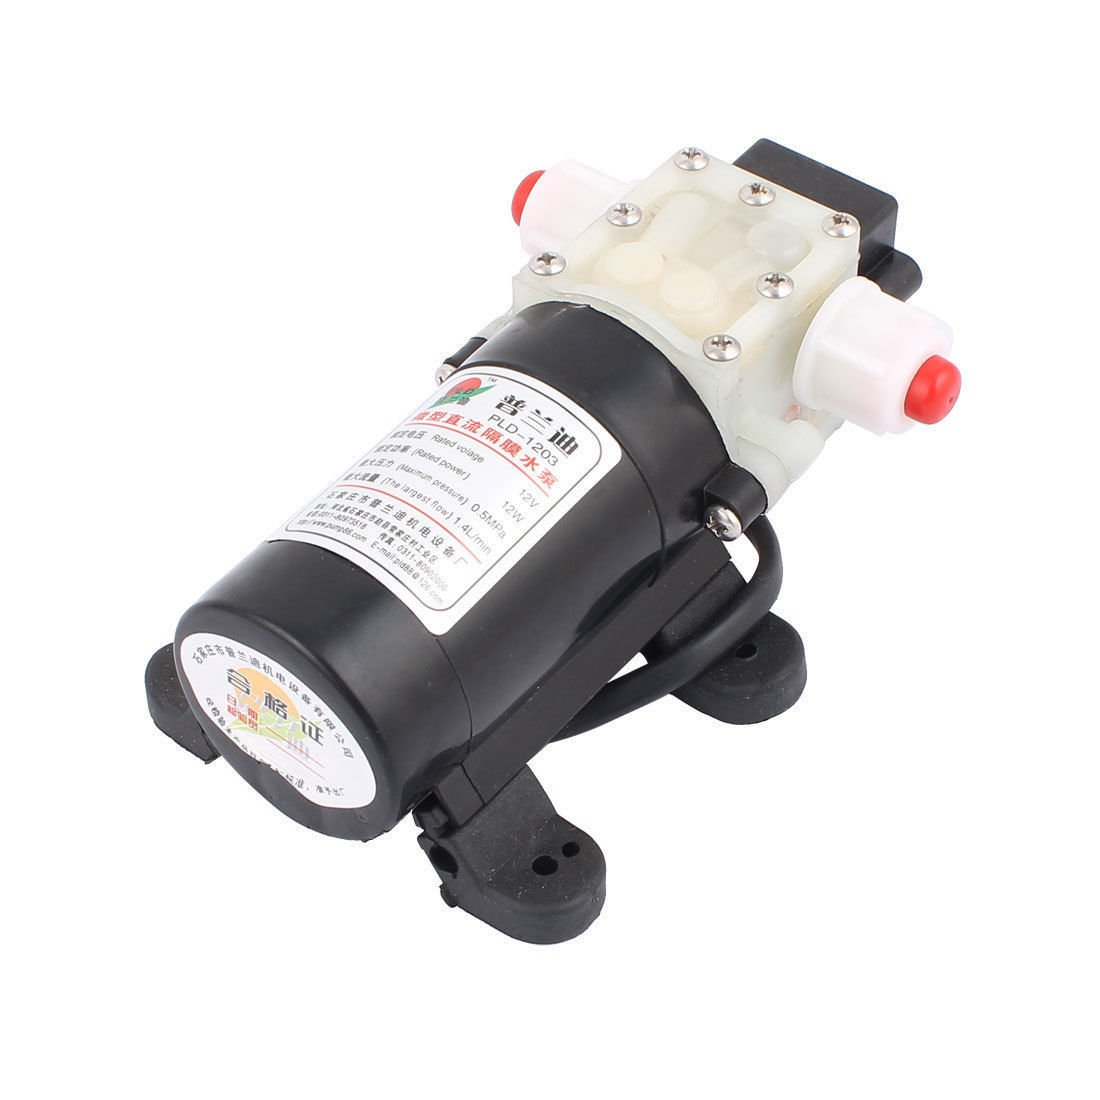 DC 12V 12W Micro Motor Water Pumps 10mm Thread Outlet Inlet Diaphragm Pump